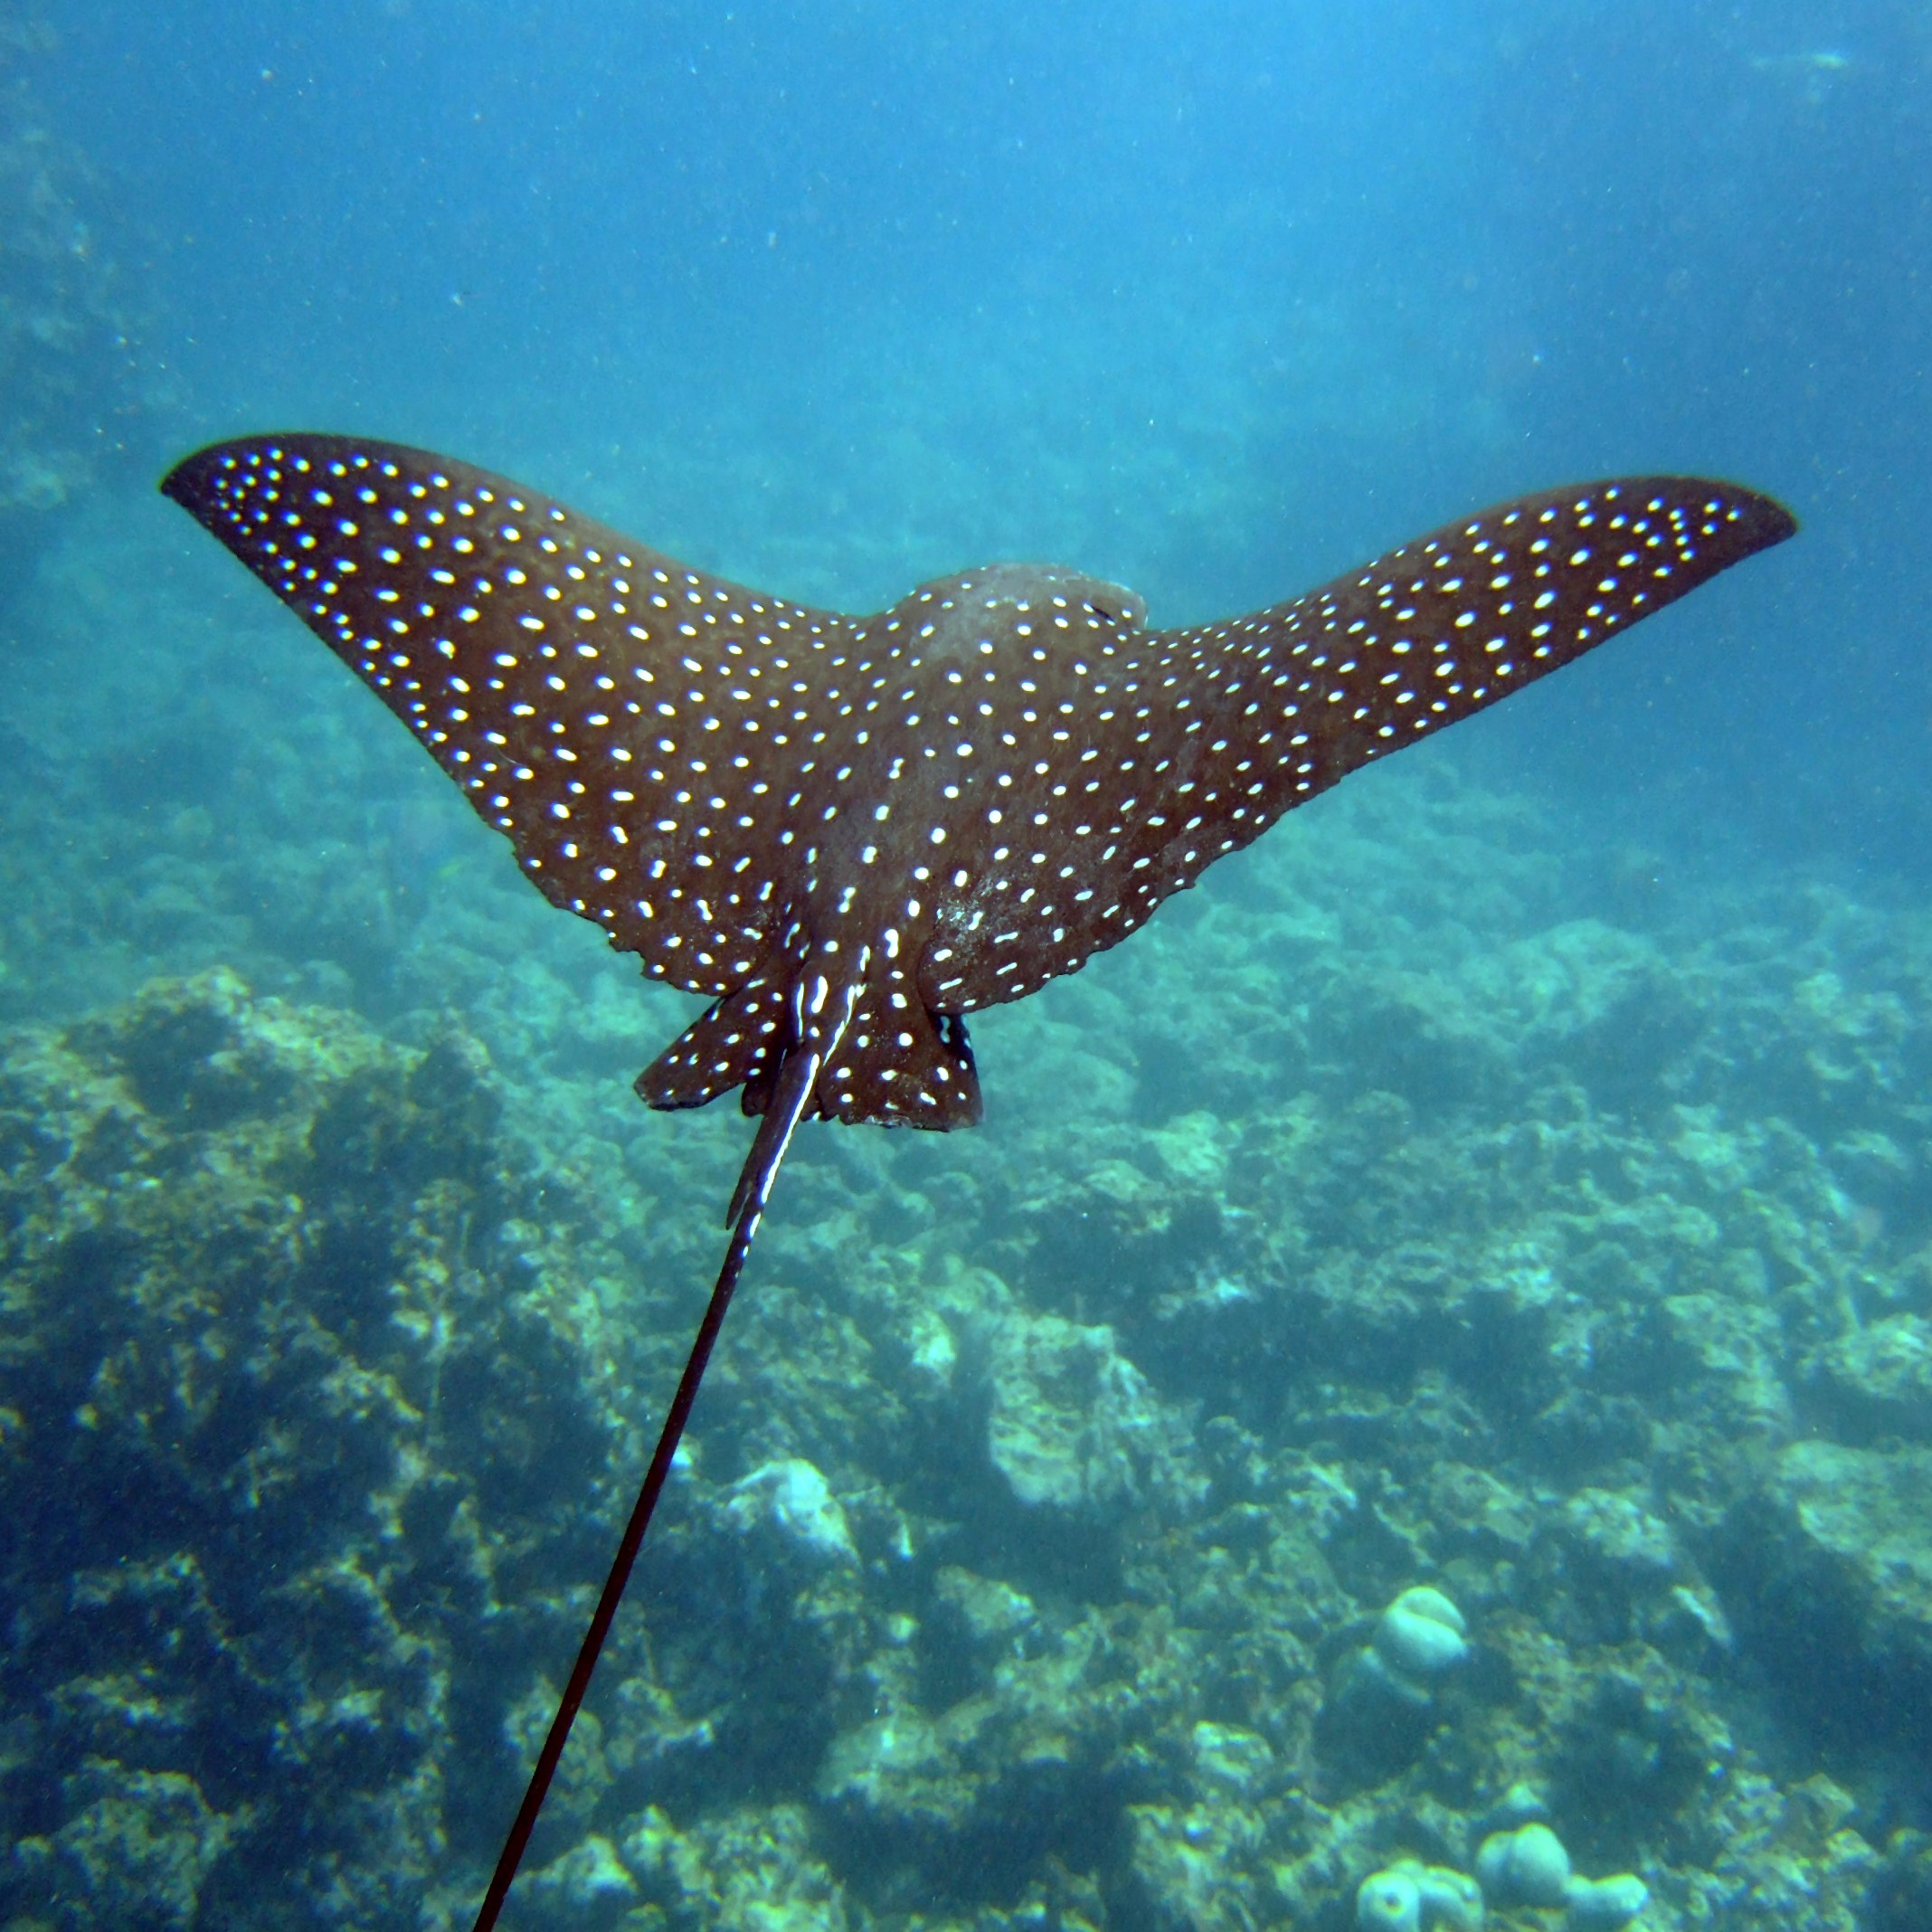 Spotted Eagle Ray image